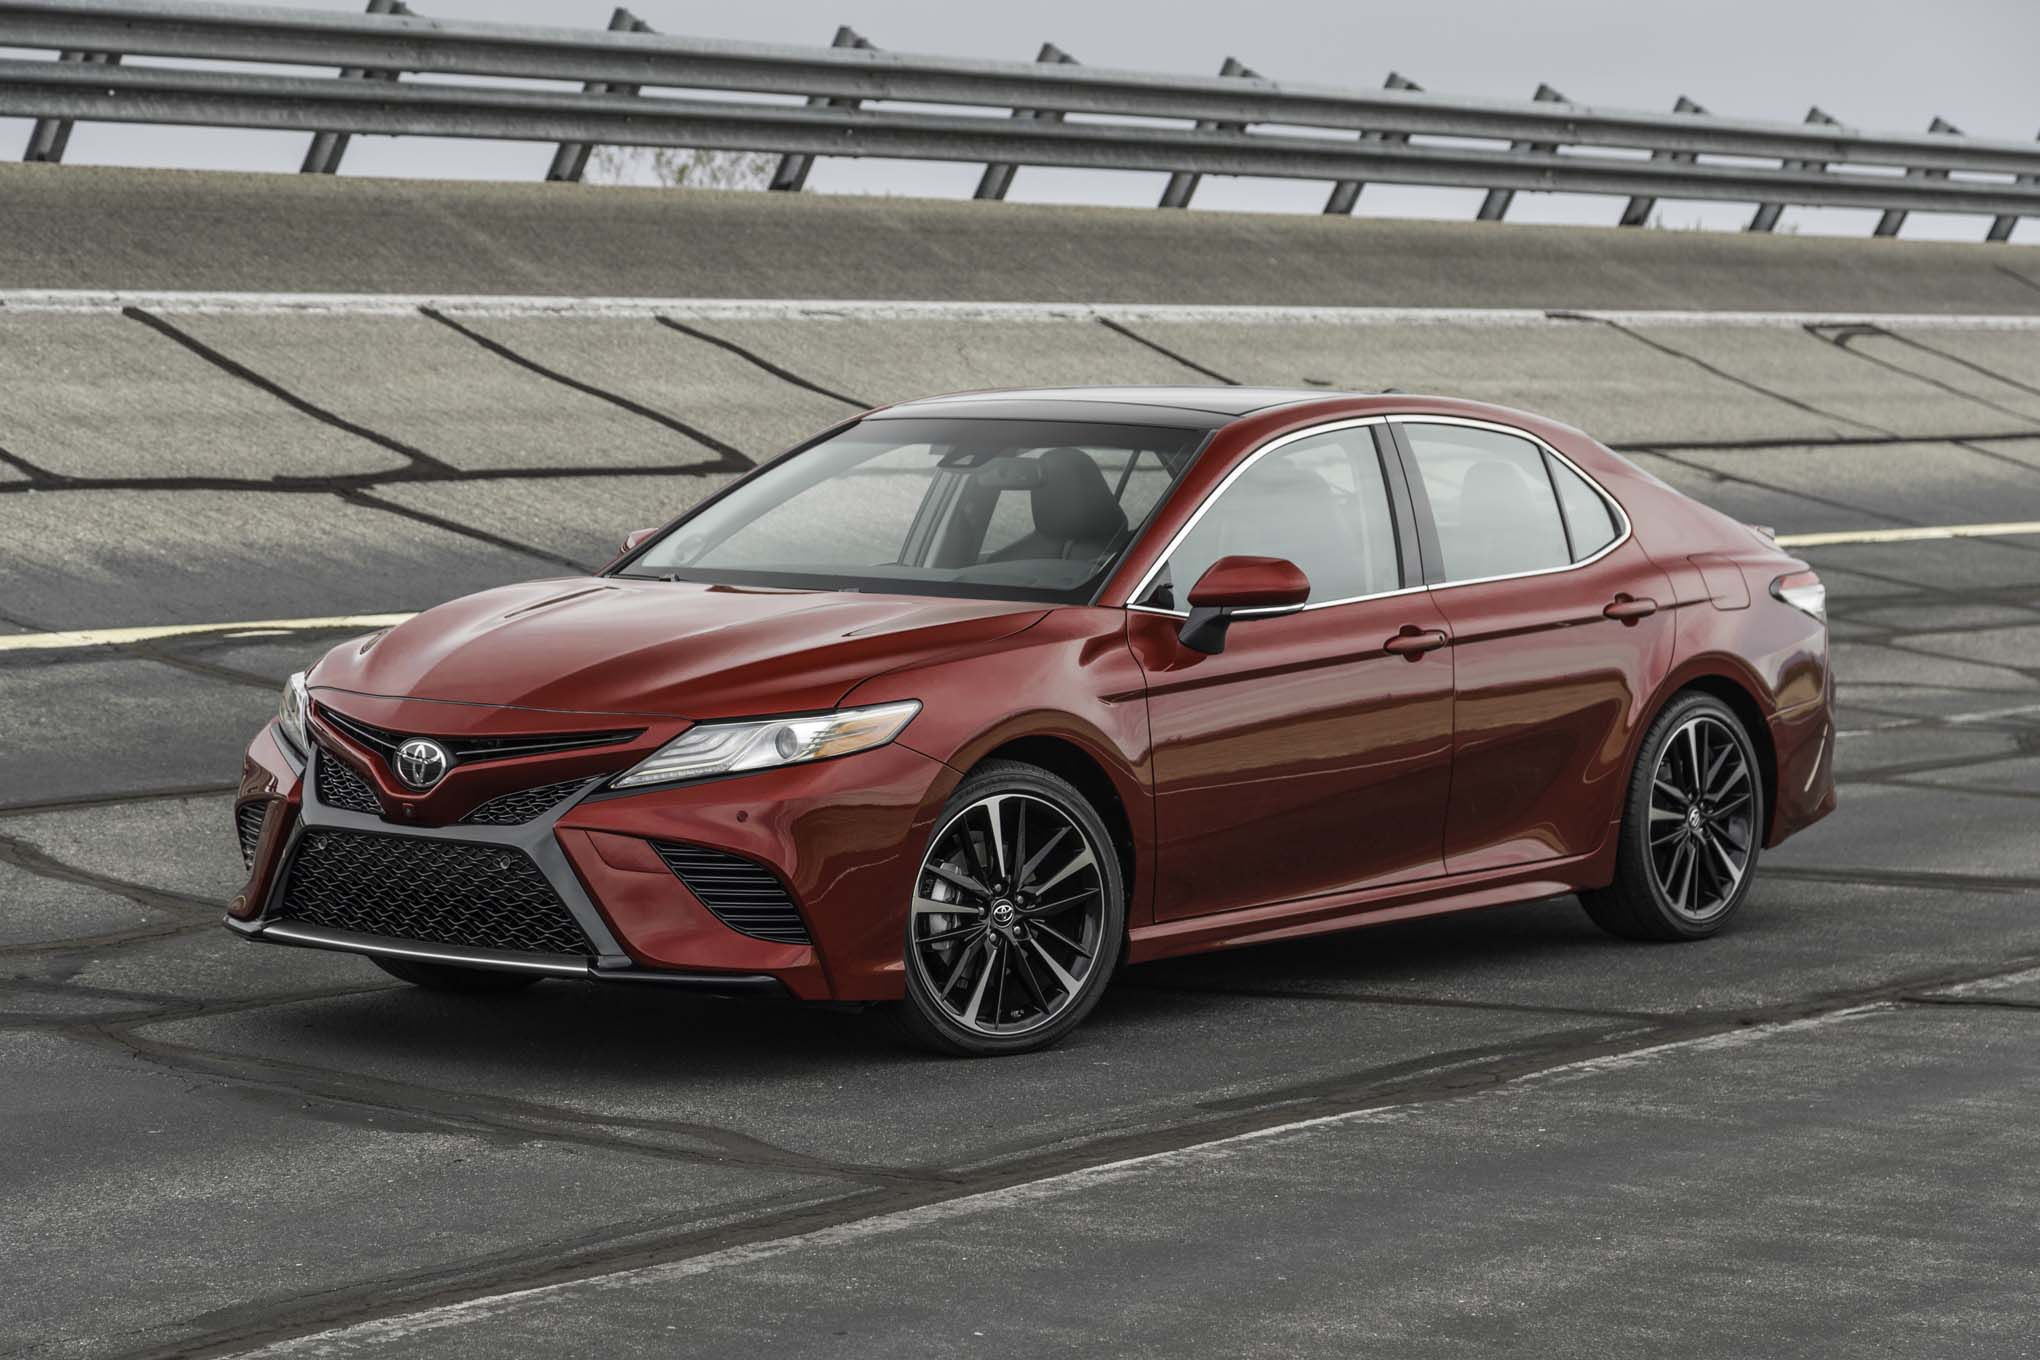 Get a sneak preview of the 2018 Toyota Camry